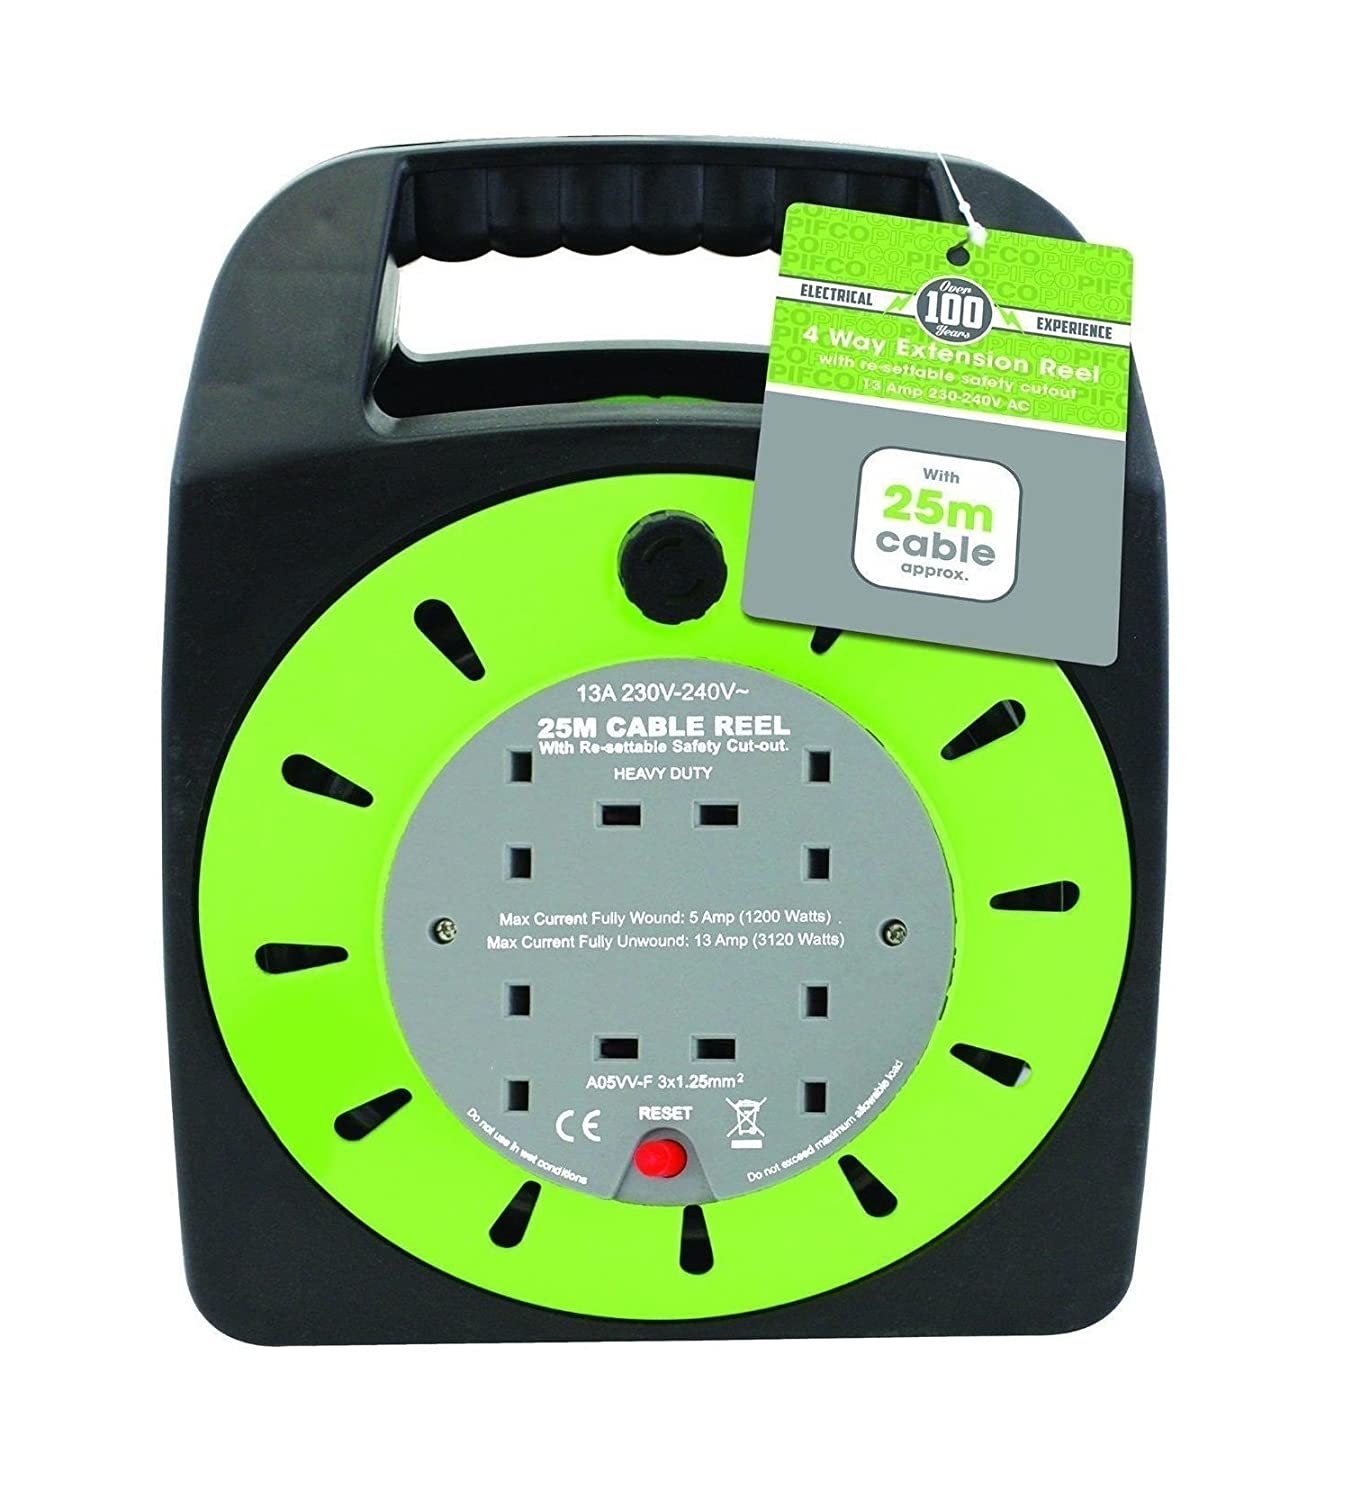 Invero/® 4 Way Mains Socket with 25M Metre Extension Lead Reel Cable Heavy Duty British Approved 13A ideal for Workshops Home Use DIY and more